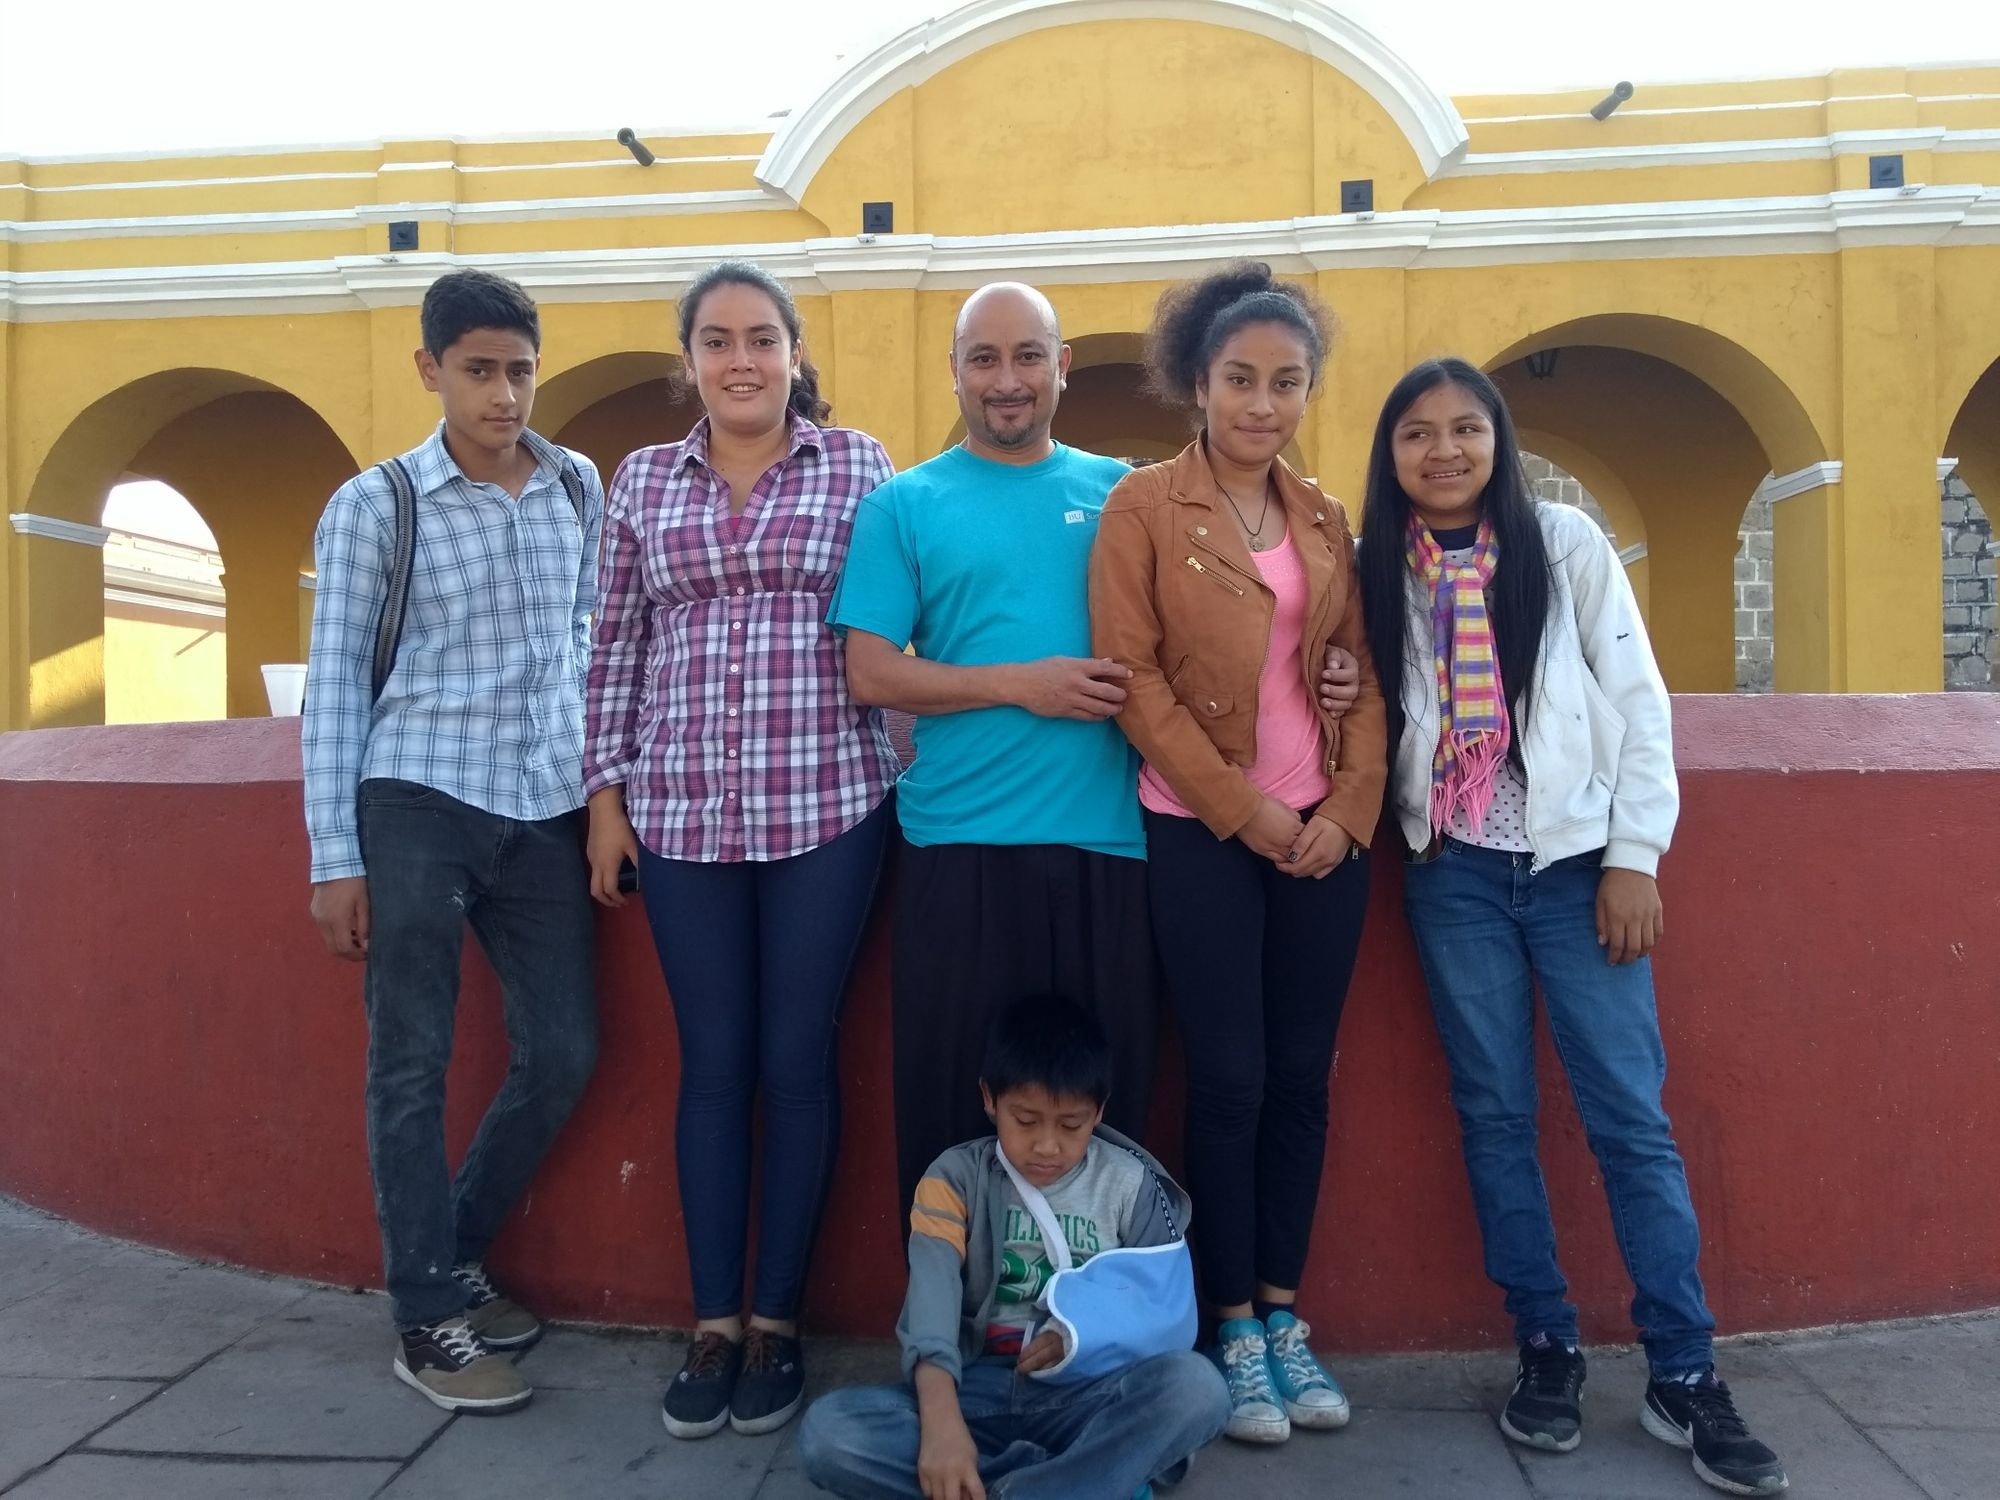 Meet Francisco Ordoñez, one of our incredible Spanish teachers from Guatemala!